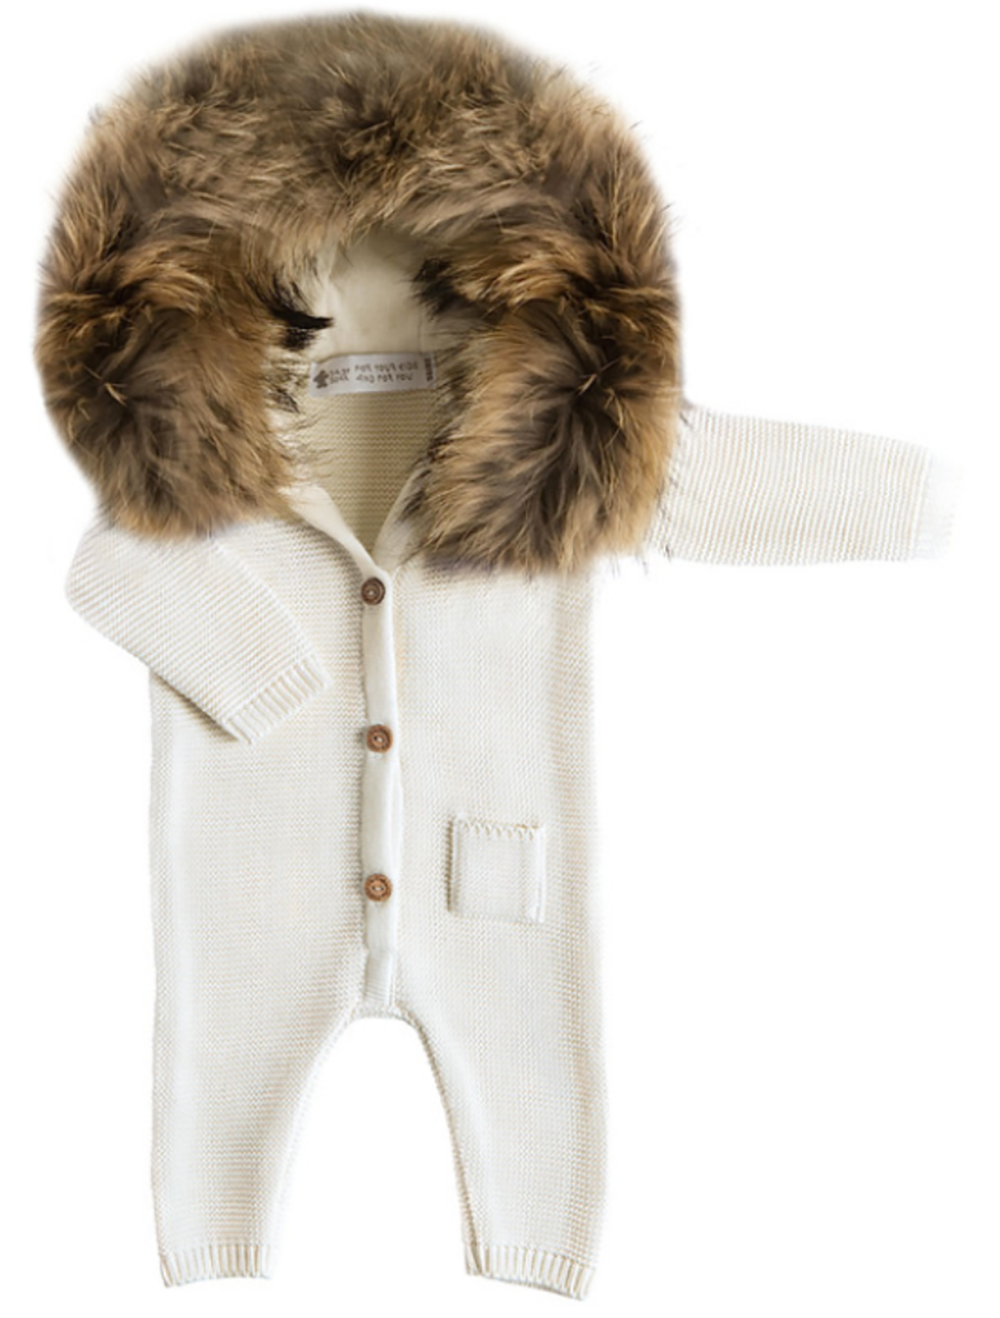 NEW | EMPIRE® BABY BEAR WINTER FUR FULL OUTFIT